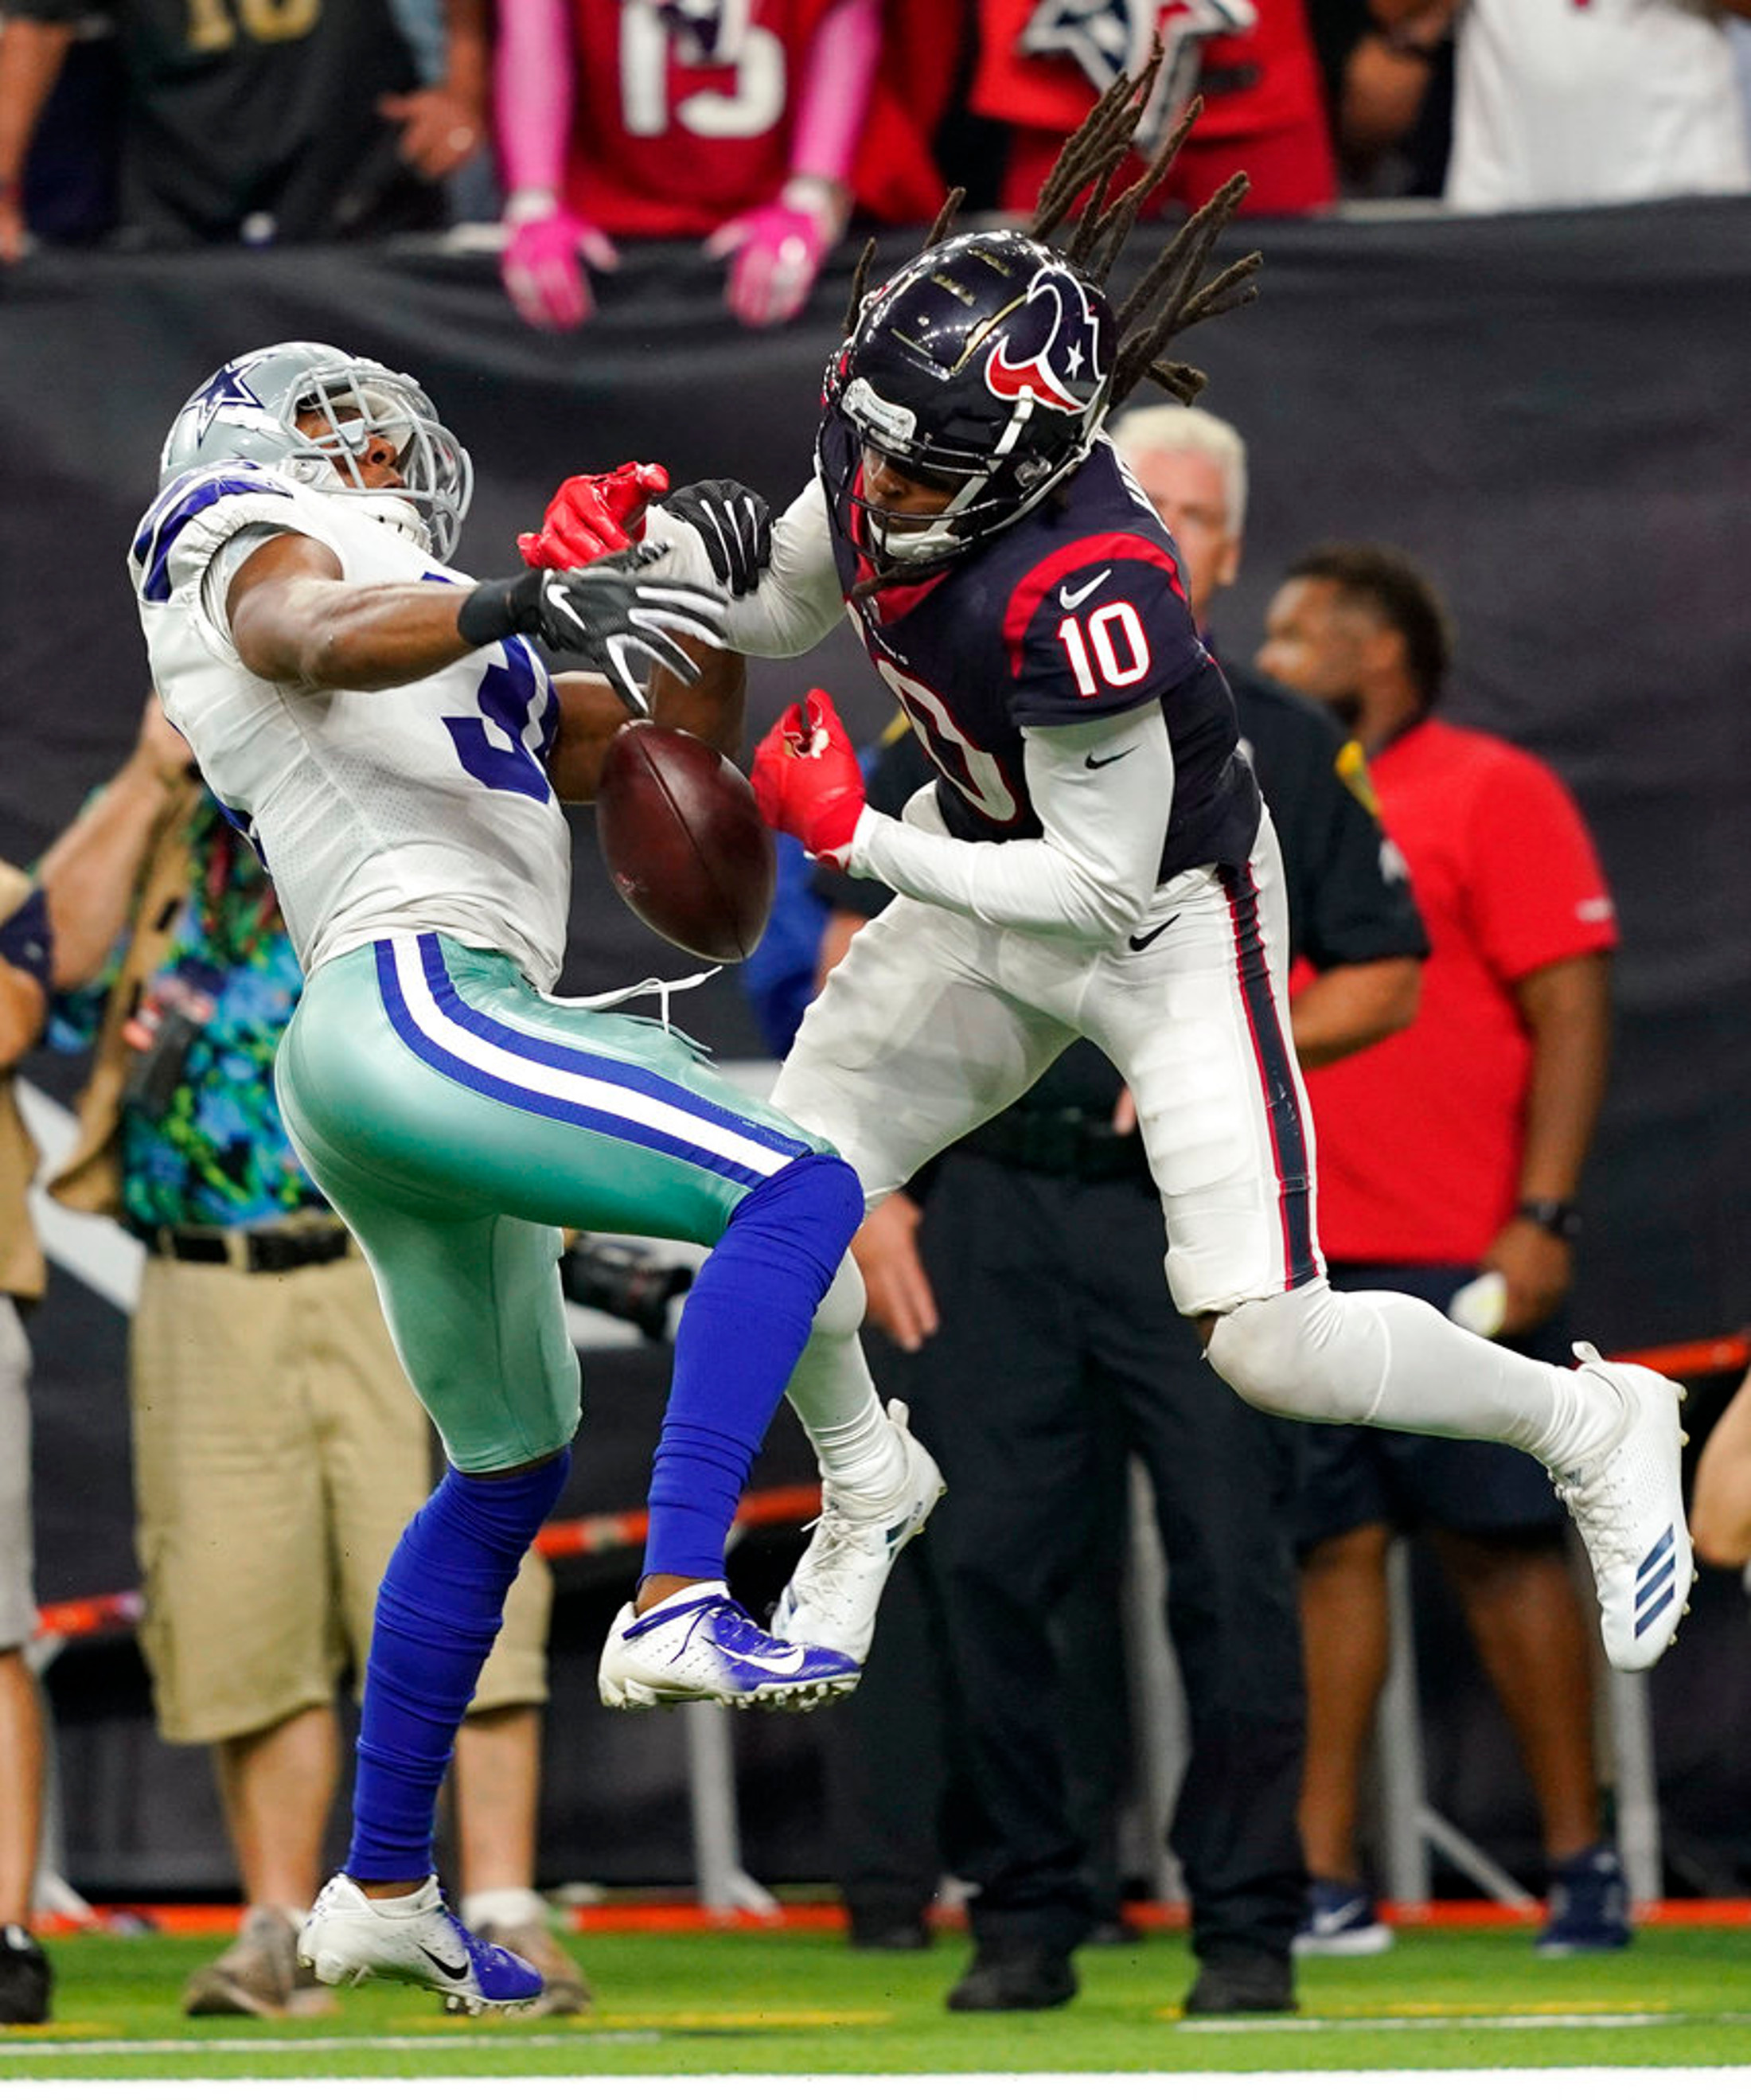 Dallas Cowboys cornerback Byron Jones (31) breaks up a pass in the end zone intended for Houston Texans wide receiver DeAndre Hopkins (10) during the second half of an NFL football game, Sunday, Oct. 7, 2018, in Houston. (AP Photo/David J. Phillip)